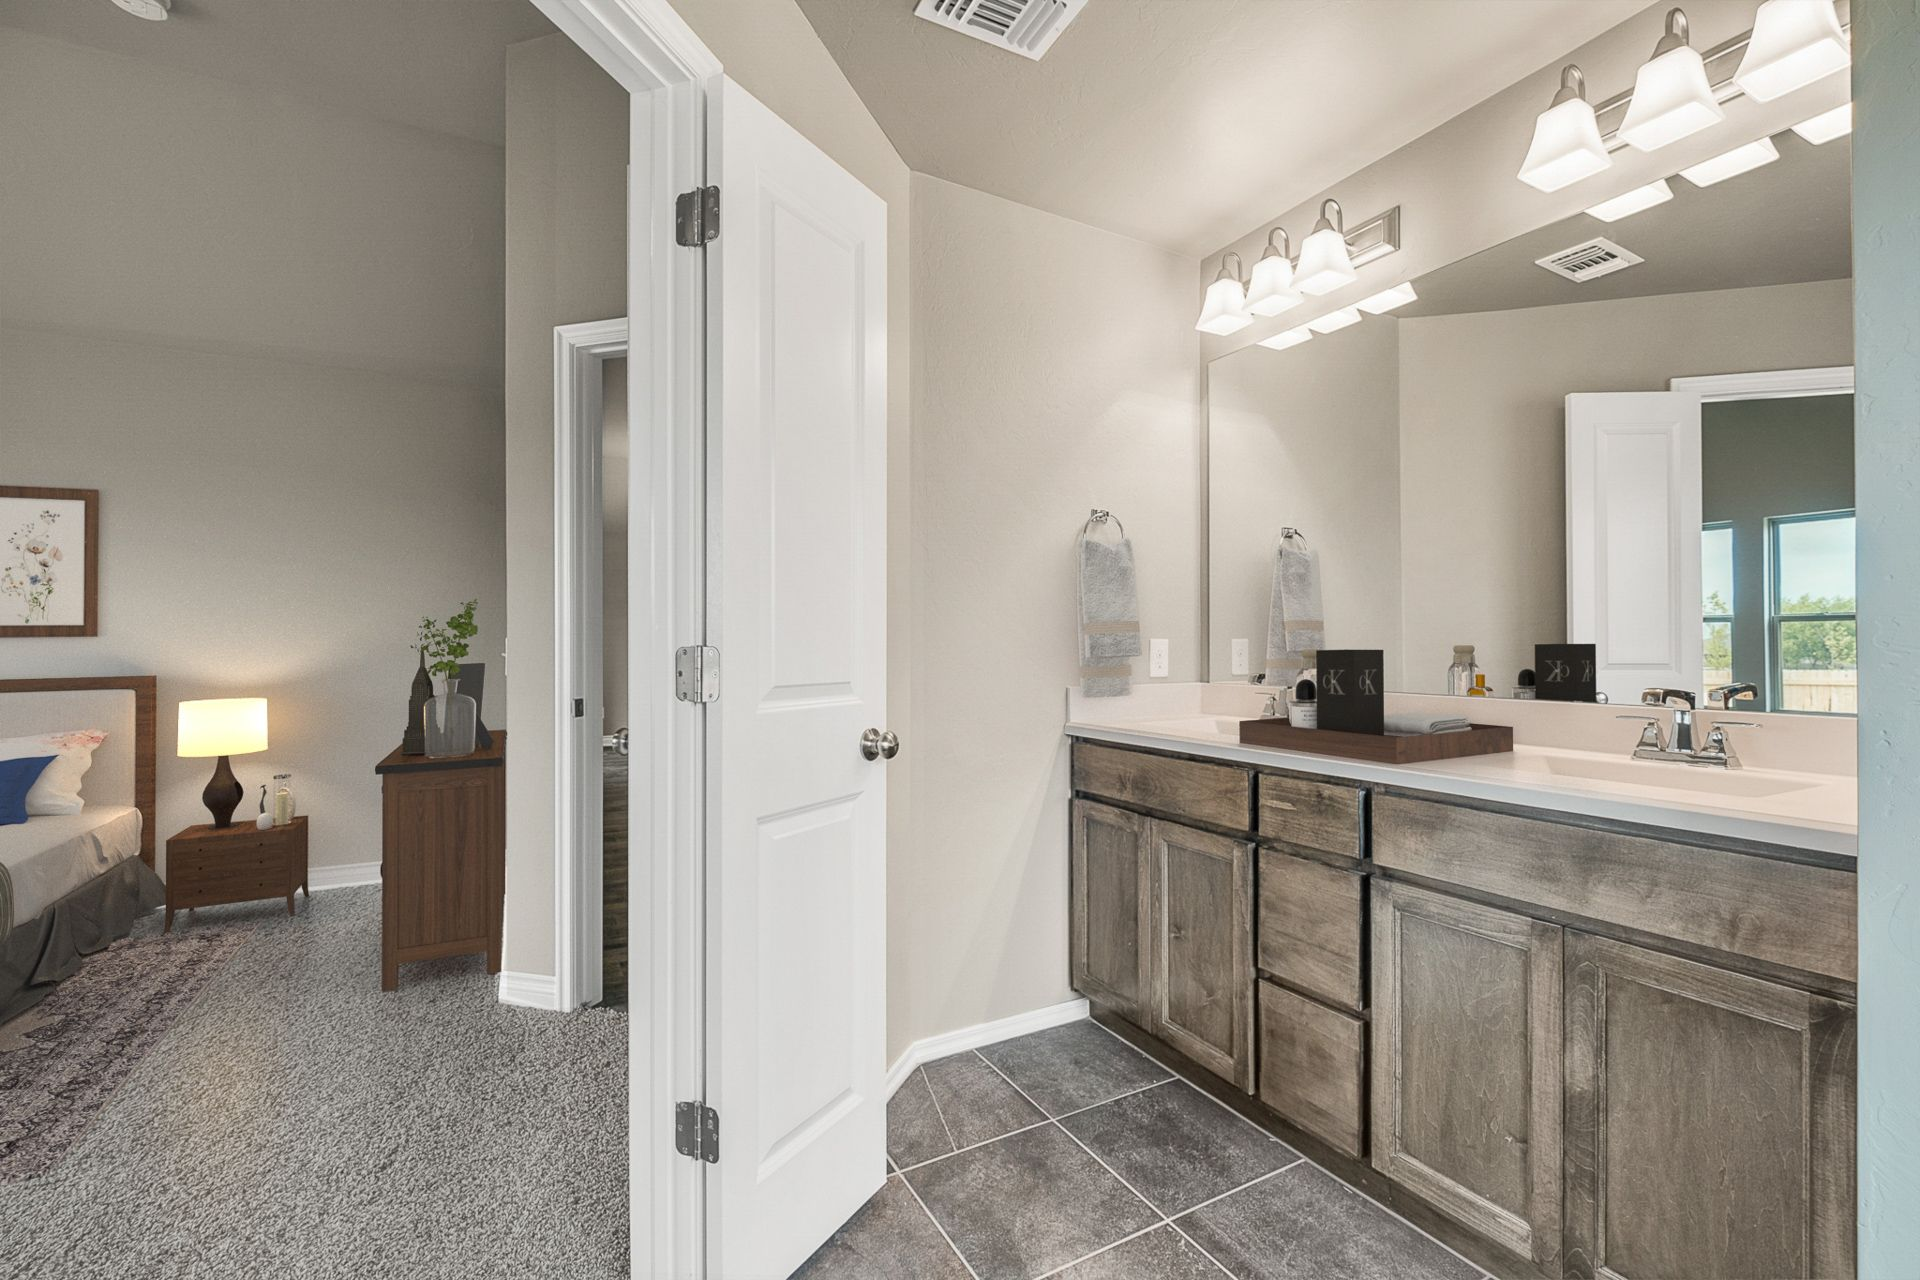 Bathroom featured in the Kingsley By Ideal Homes in Oklahoma City, OK